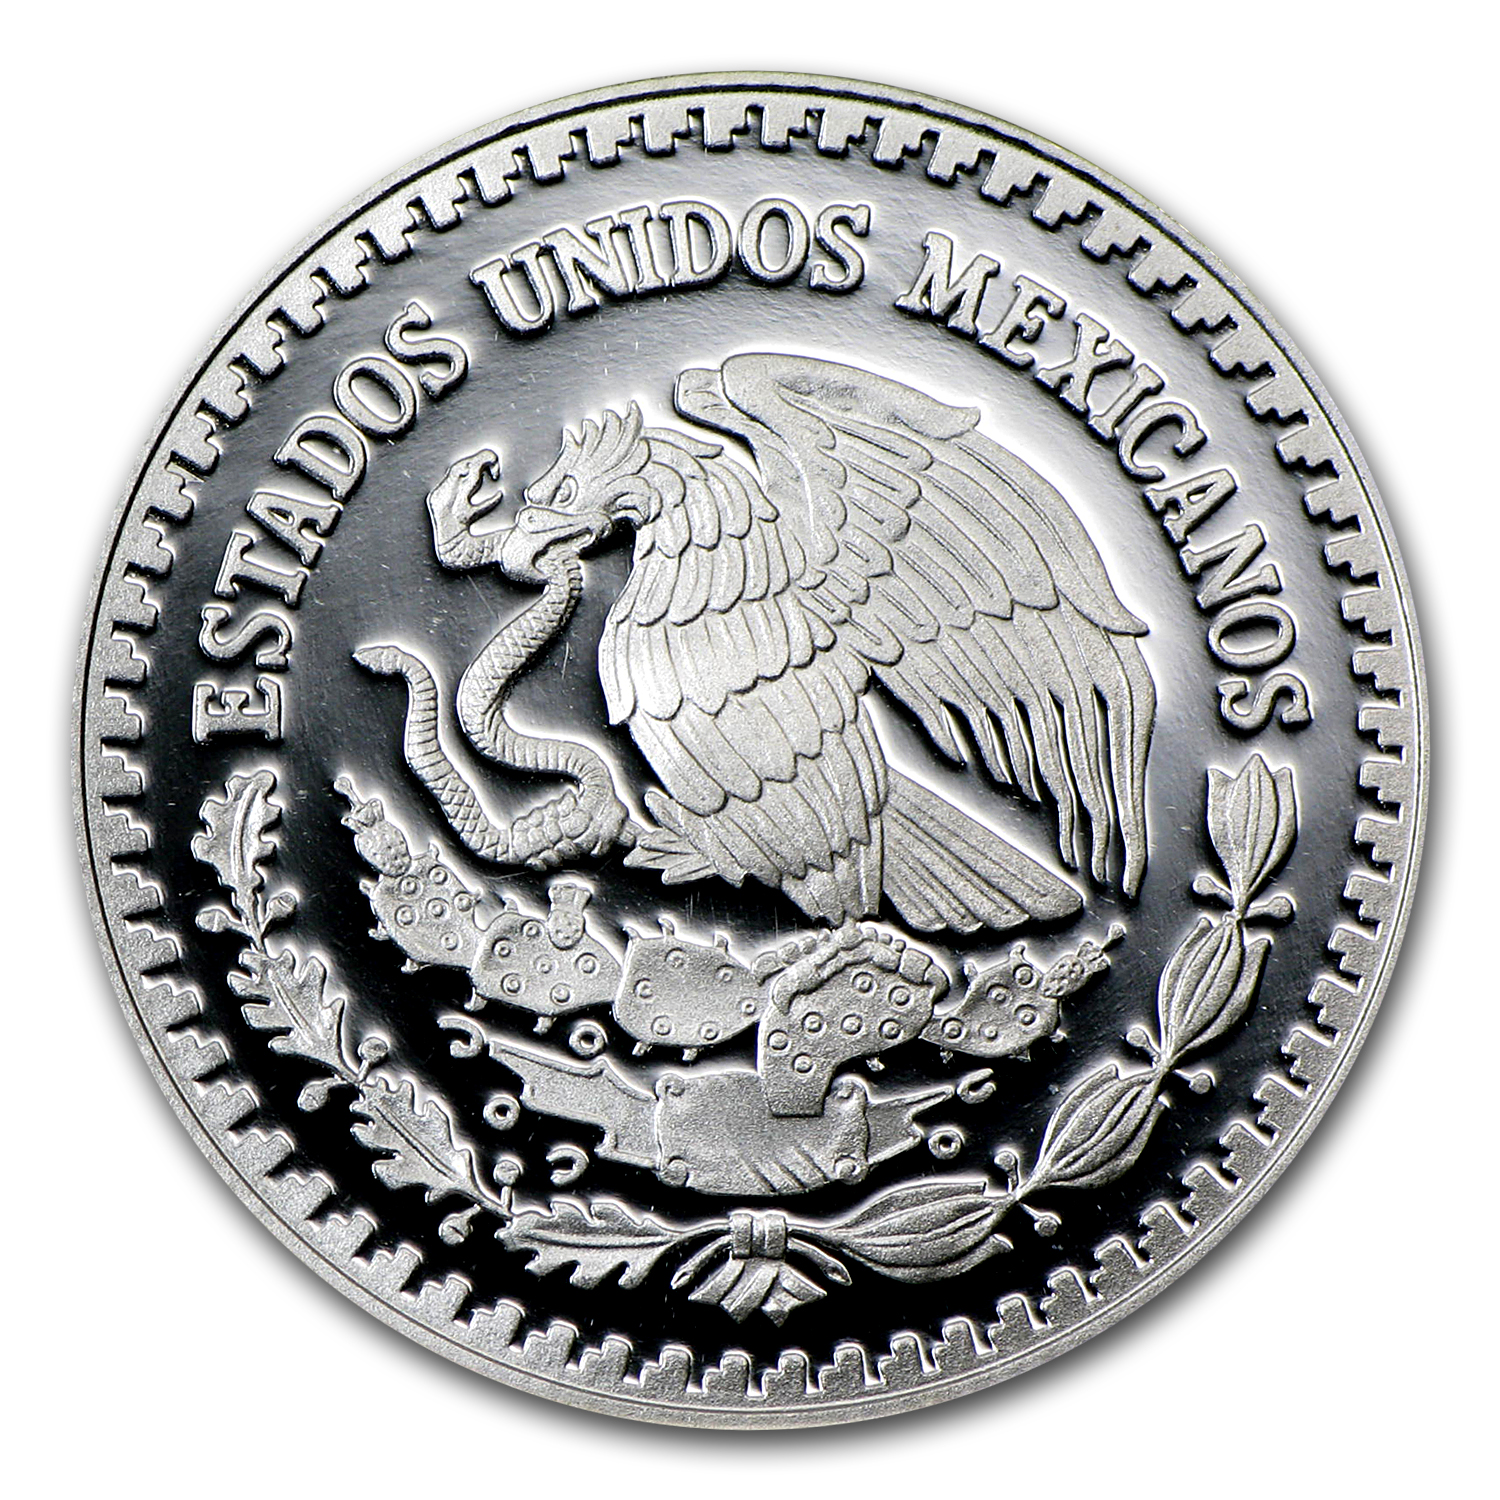 2011 1/4 oz Silver Mexican Libertad - Proof (In Capsule)